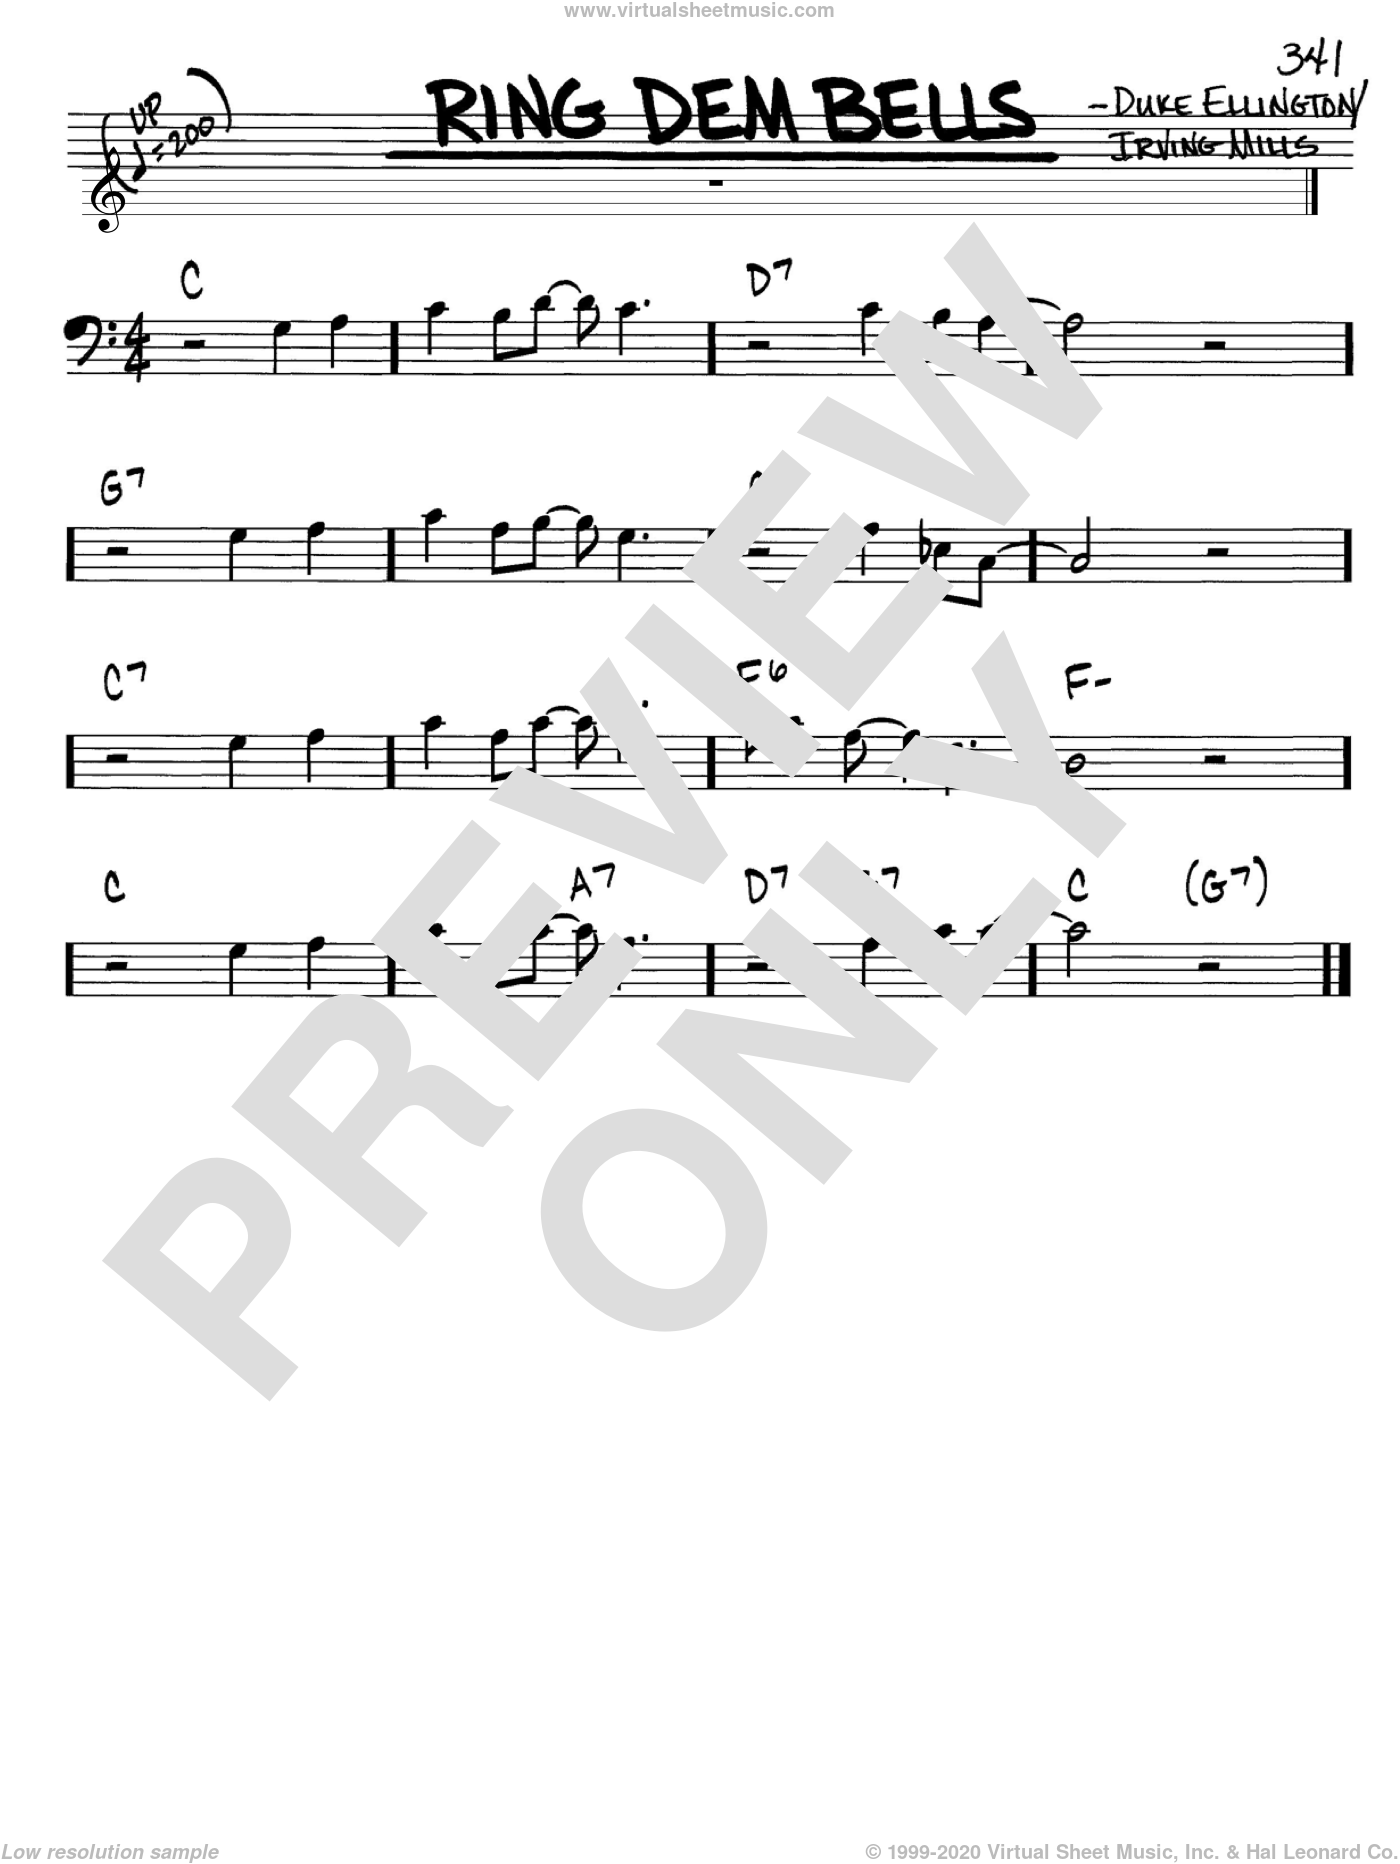 Ring Dem Bells sheet music for voice and other instruments (bass clef) by Duke Ellington and Irving Mills, intermediate